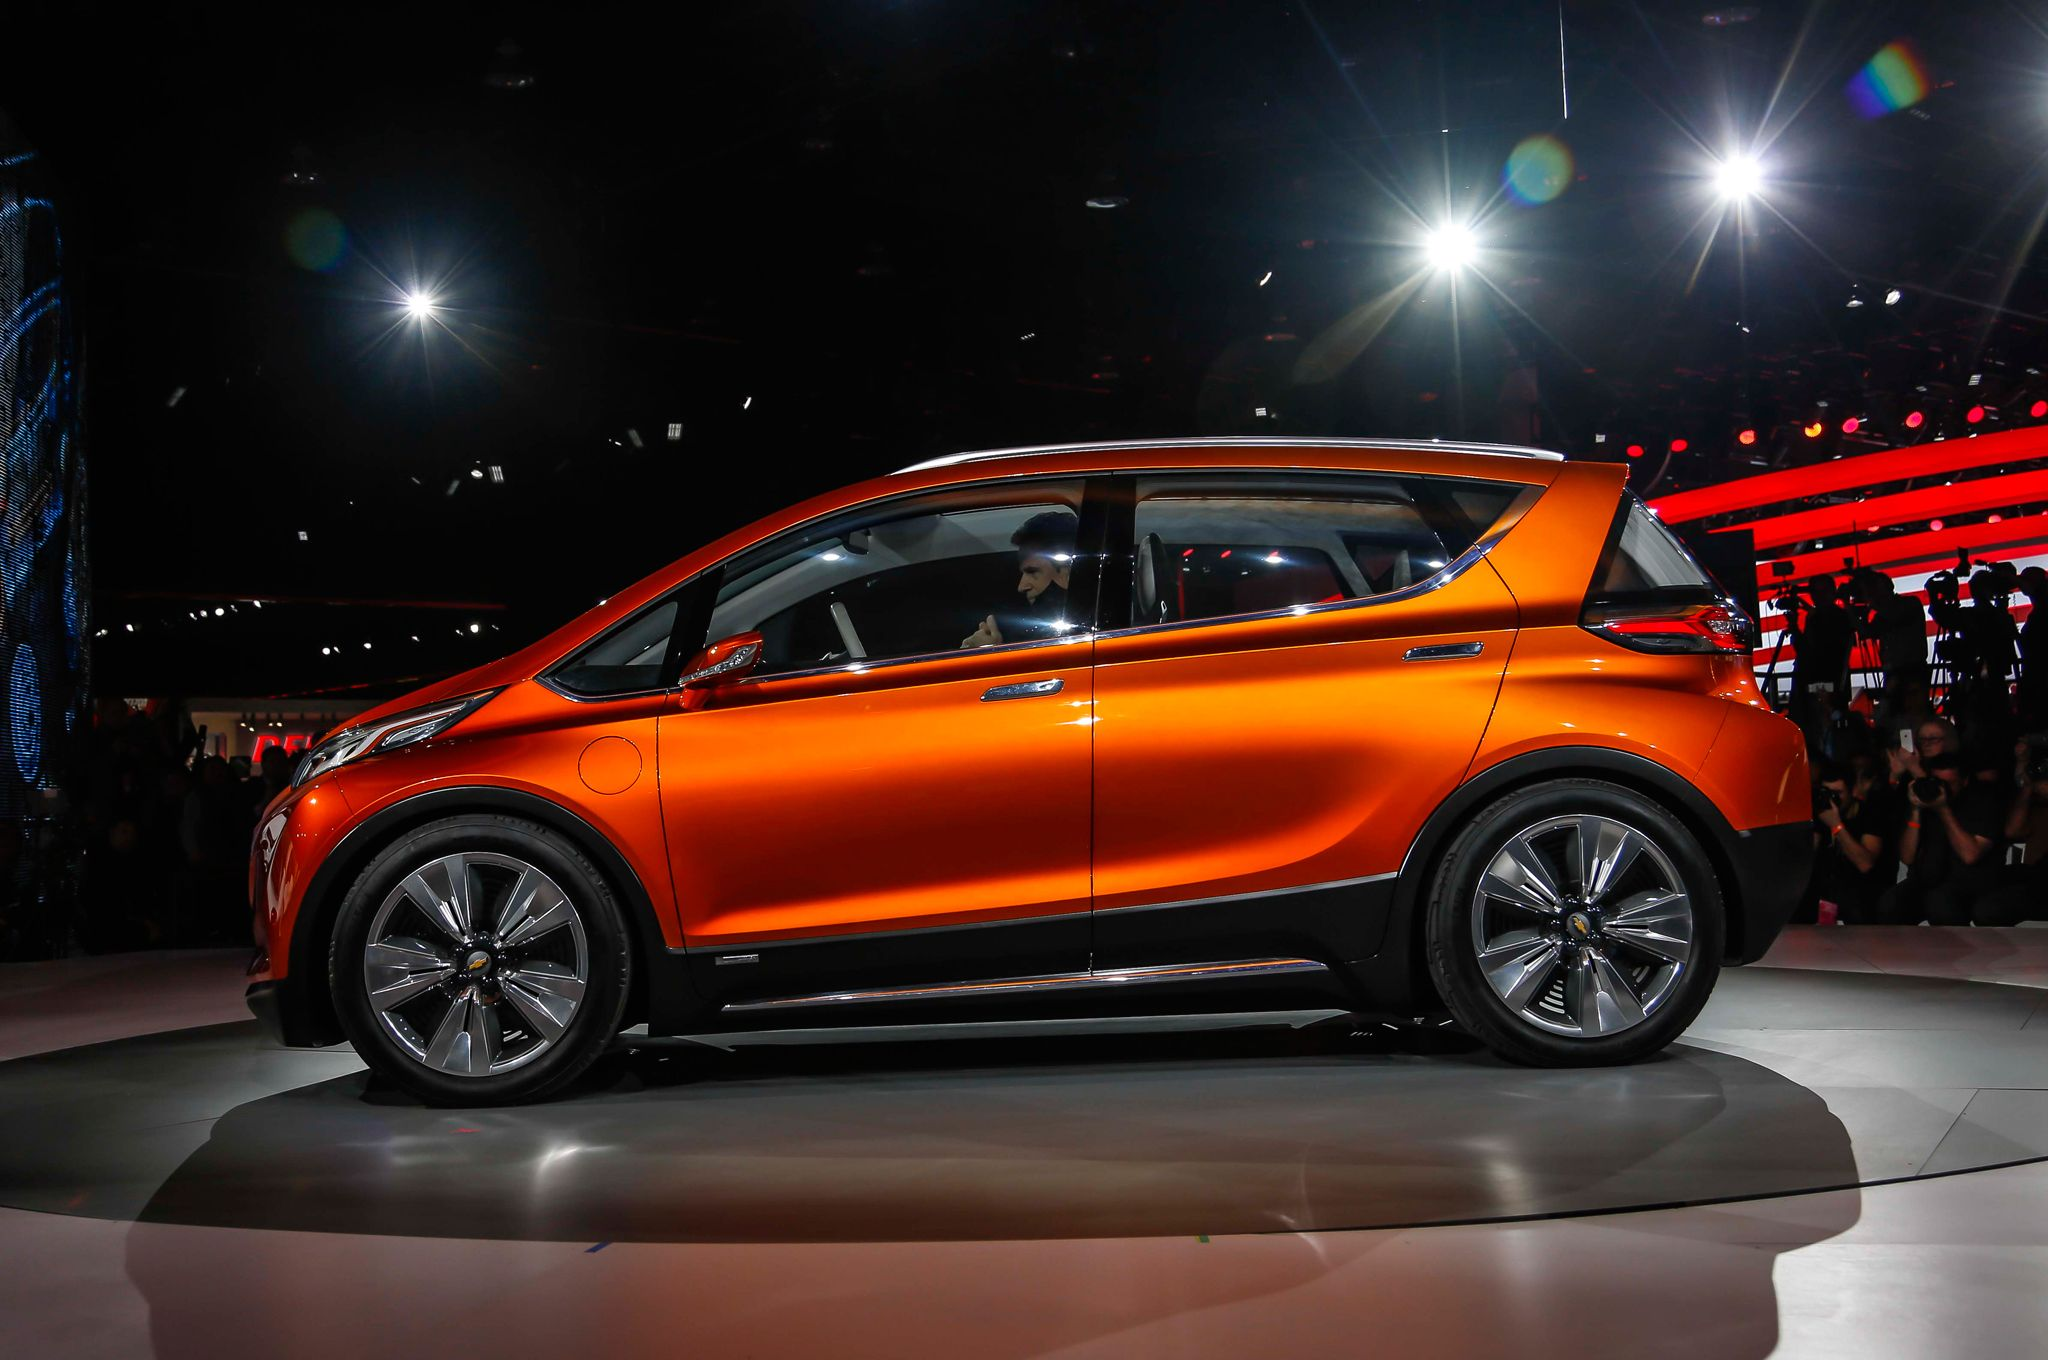 h hatchback news drive quick chevrolet sonic